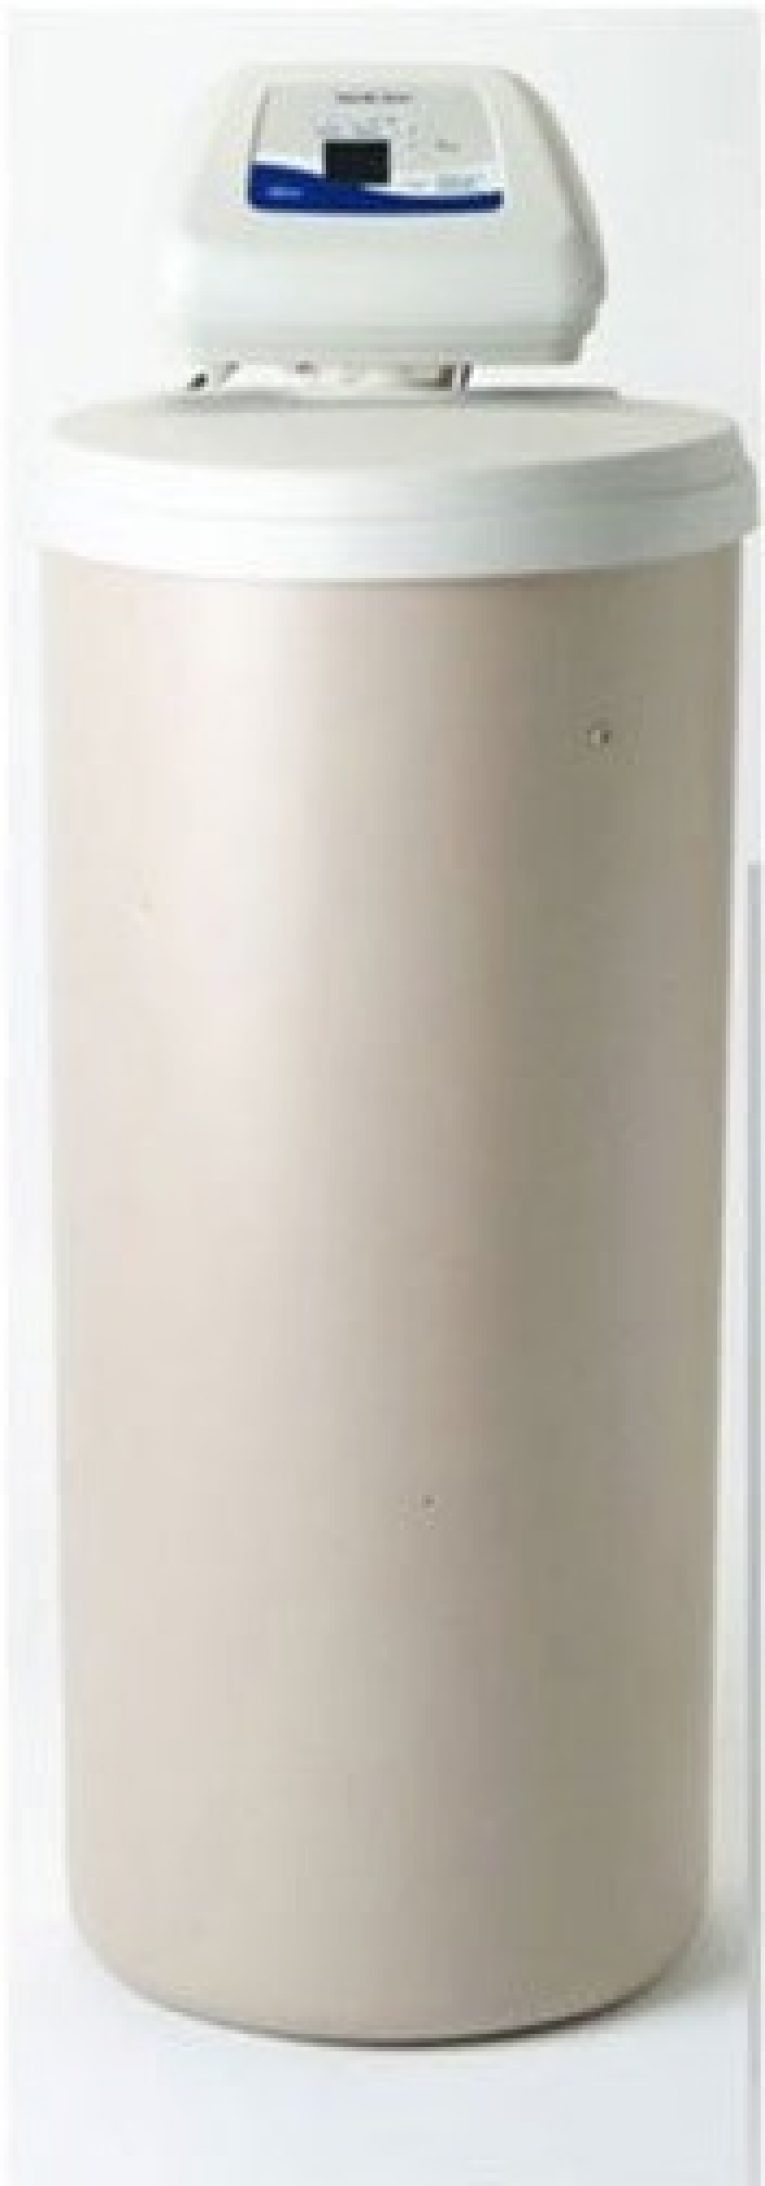 North Star NSC30UD Ultra Demand Water Softener